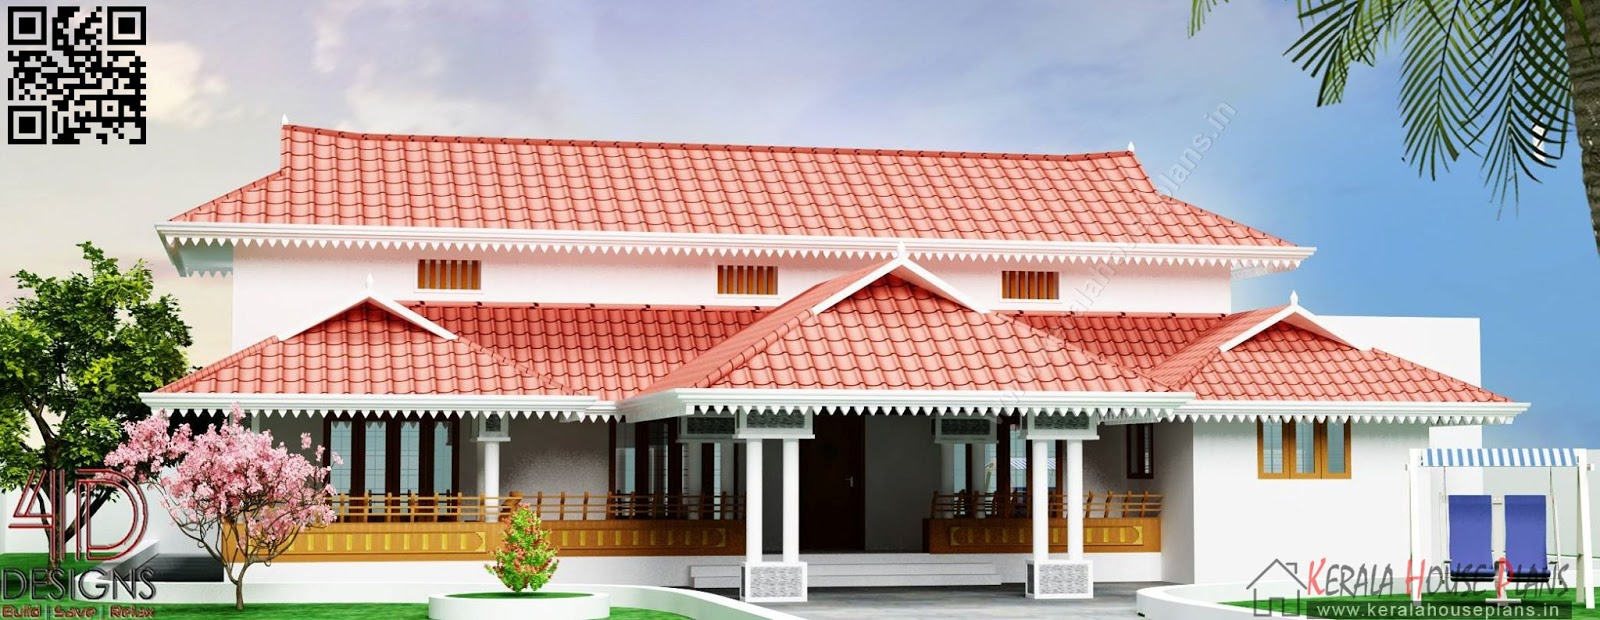 Kerala traditional home design elevation and floor details for Kerala traditional home plans